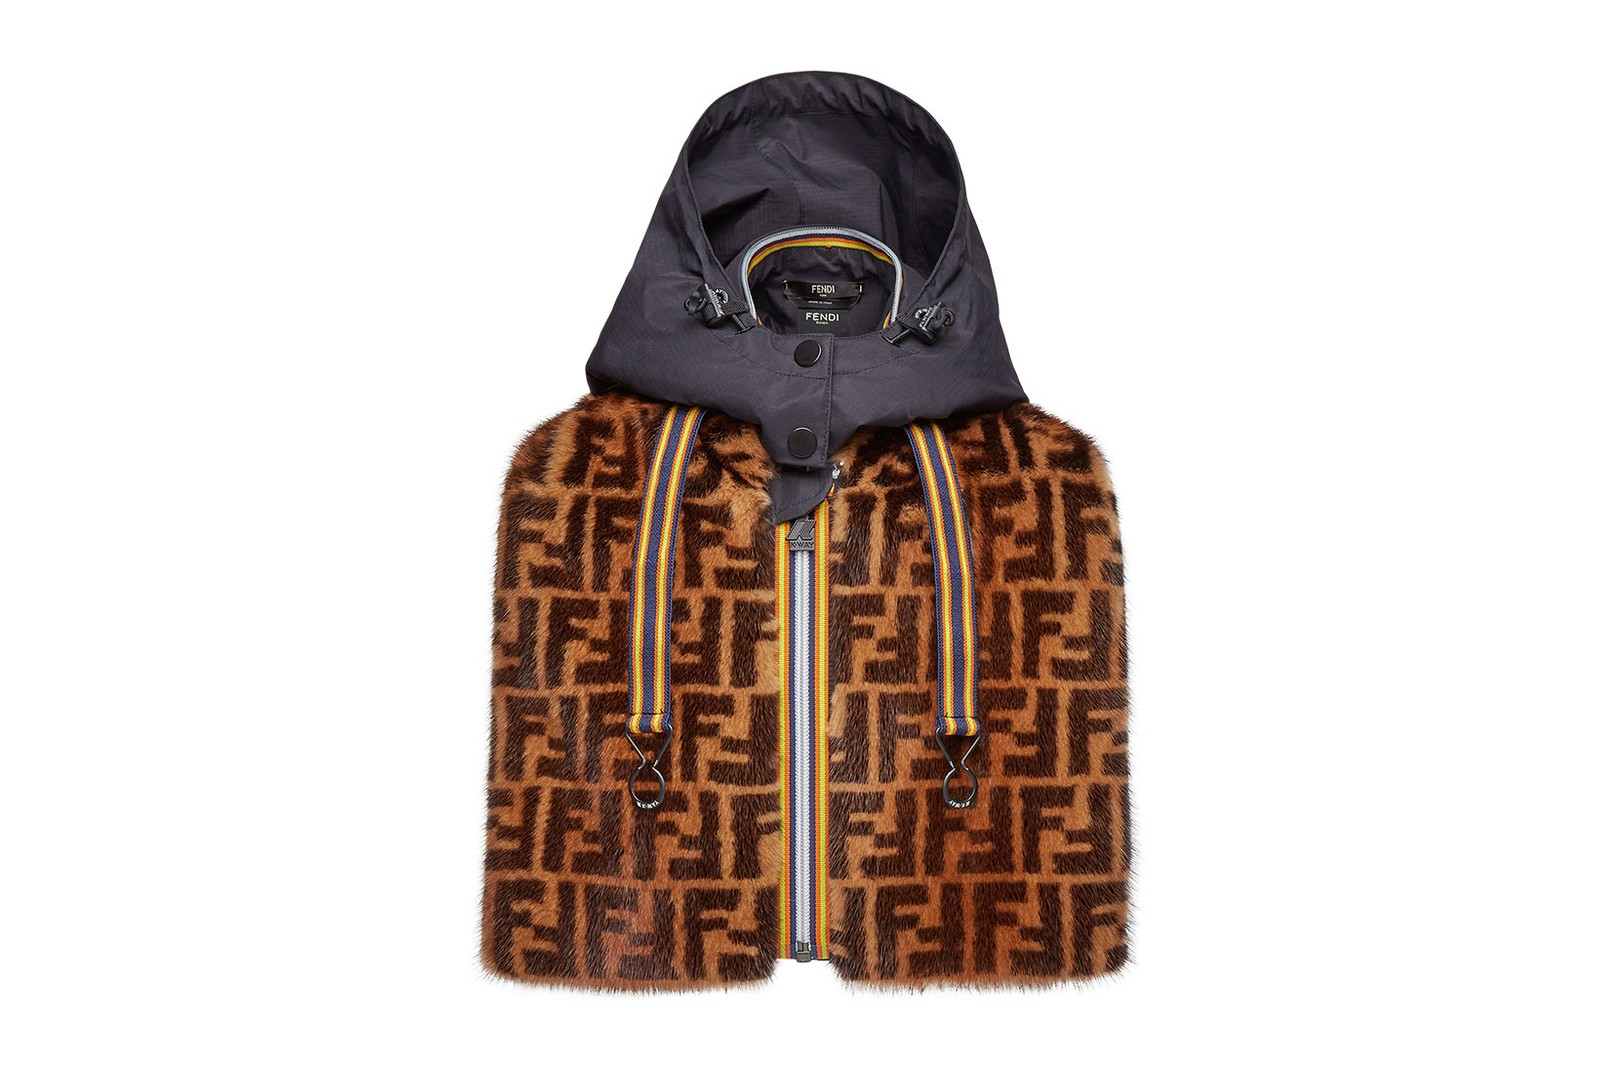 fendi k-way collaboration ff logo reversible jackets windbreakers outerwear release